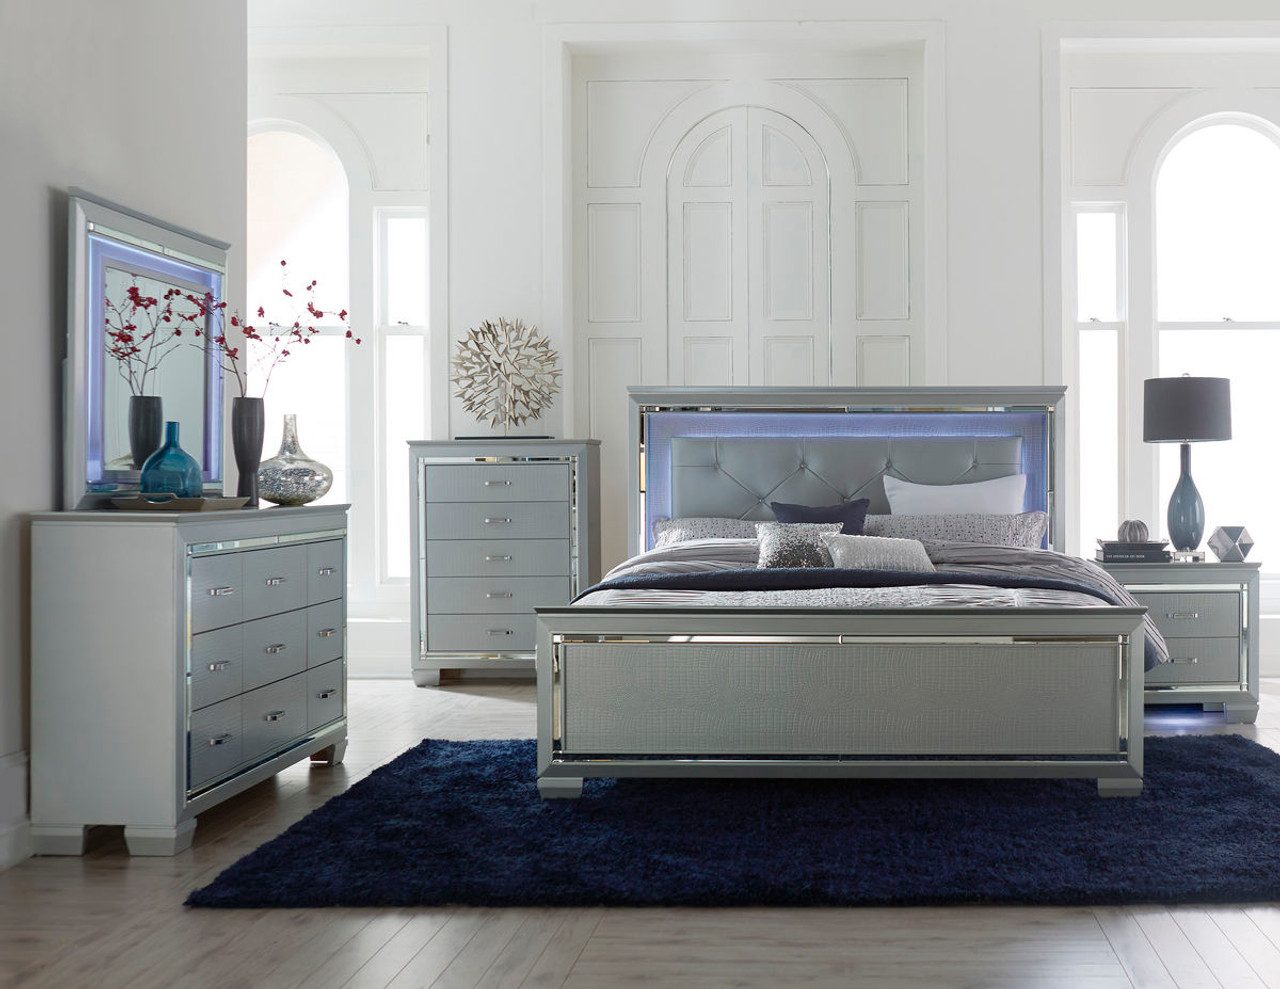 Homelegance Allura Dresser Featuring Touch-Engaged LED Lighting ...